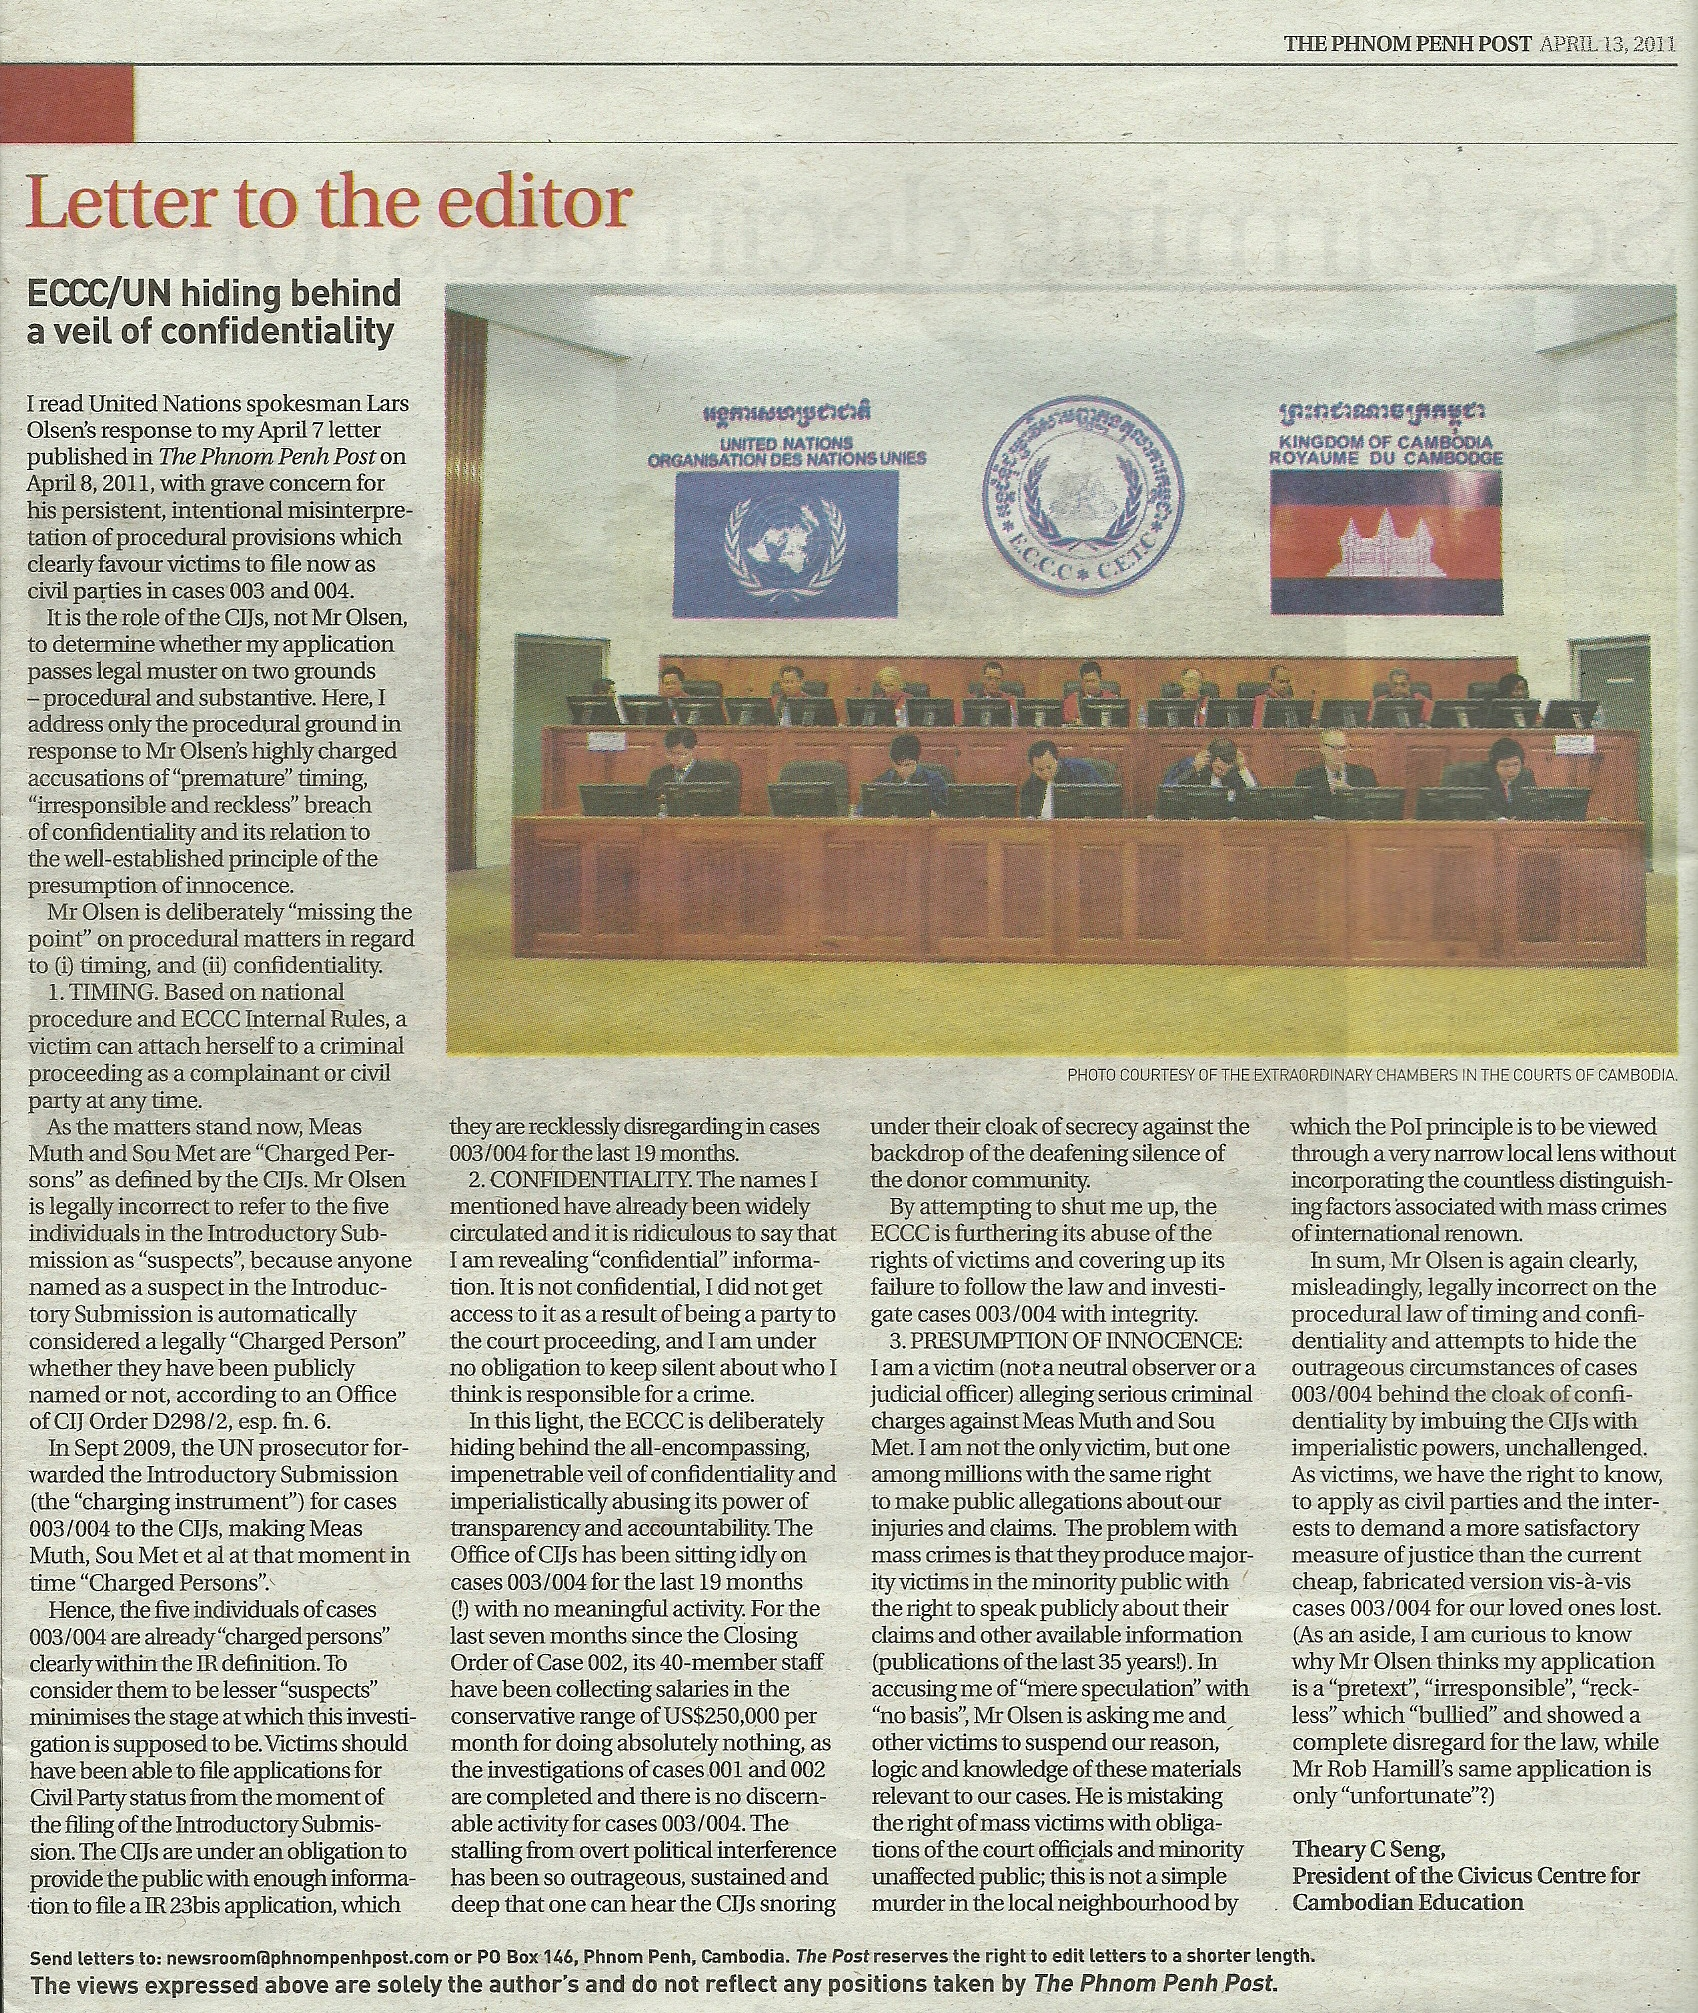 Theary Seng Letter to Editor Phnom Penh Post, 13 April 2011